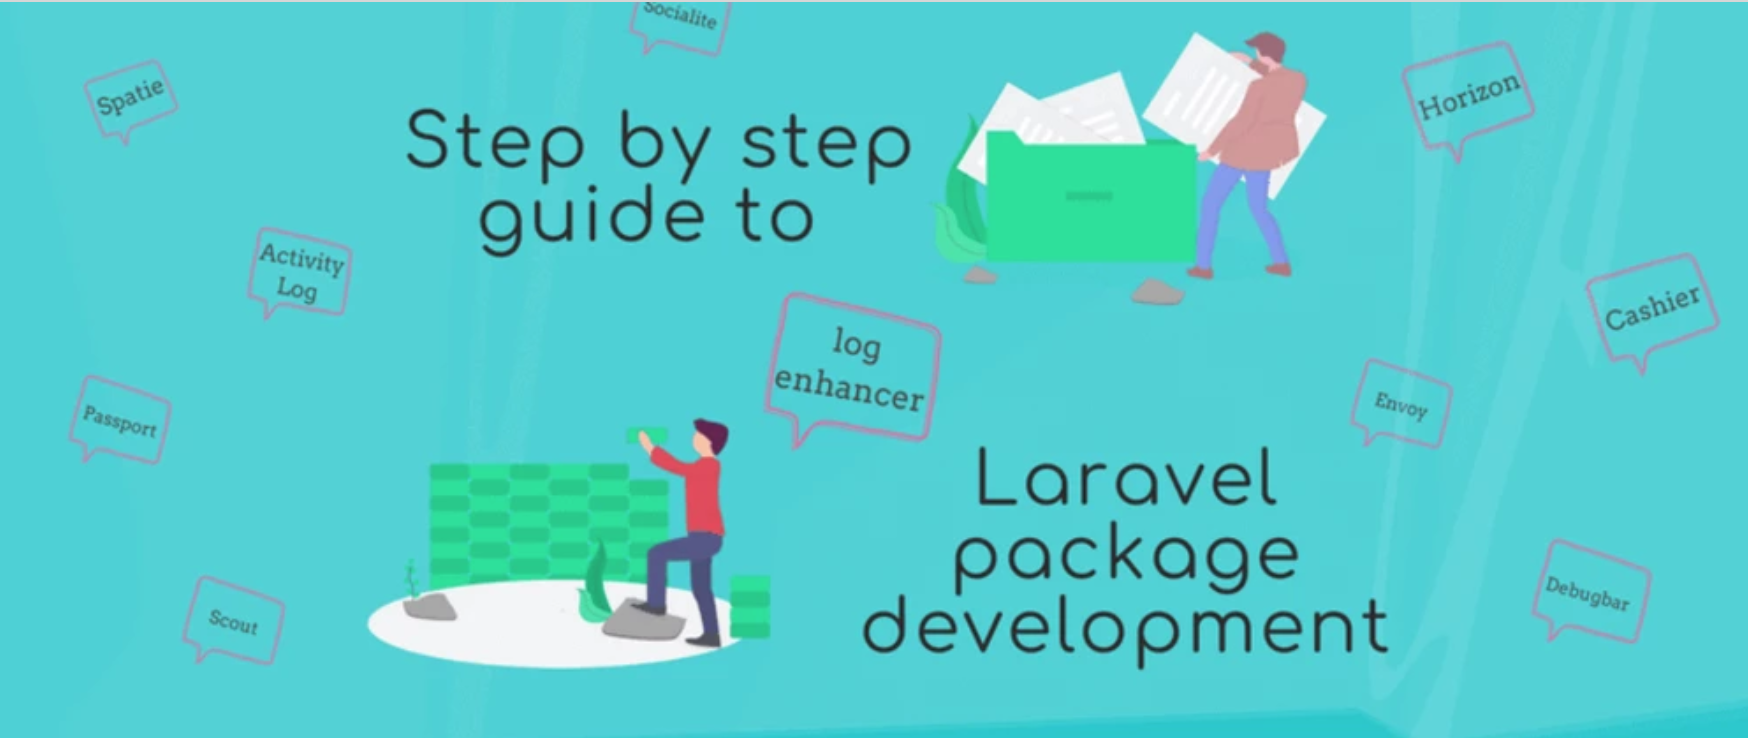 Step by step guide to Laravel package development